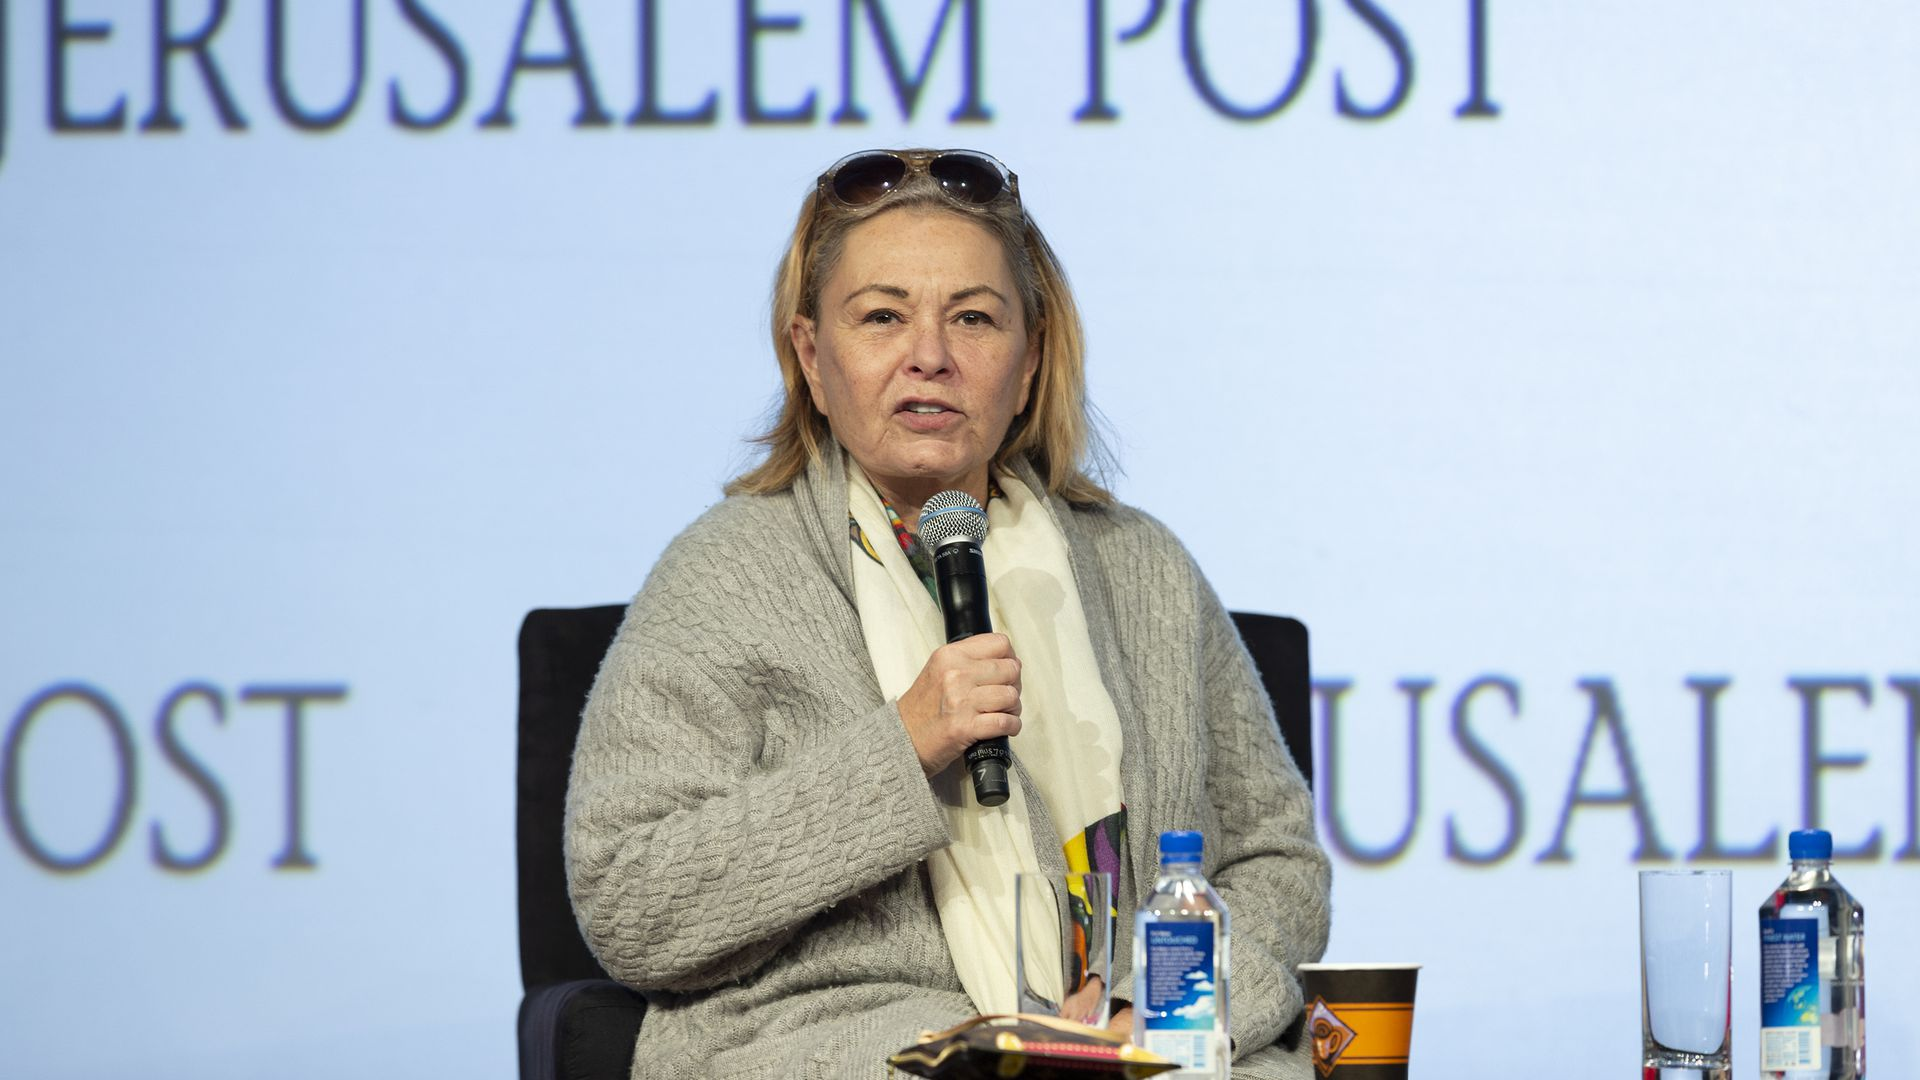 Roseanne Barr speaks on stage at an event in April